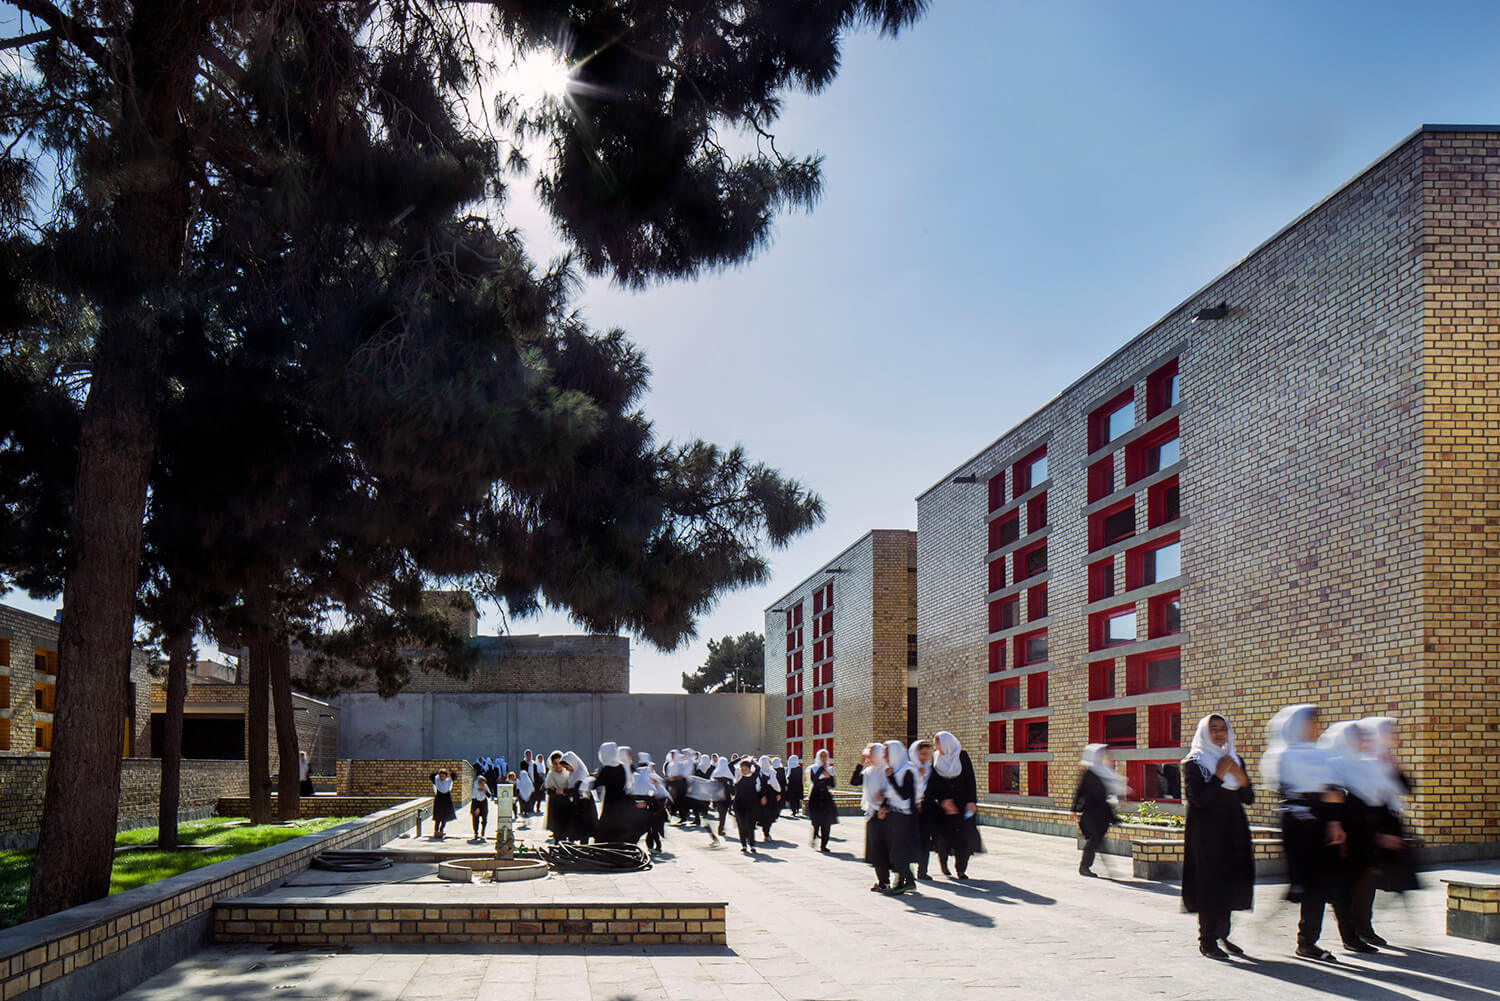 The Gohar Khatoon Girls School in Afghanistan is a 2,000 sqm complex that provides for kindergarten through grade 12, serving at least 3,000 students or more | Yasaman Esmaili | Studio Chahar | STIRworld